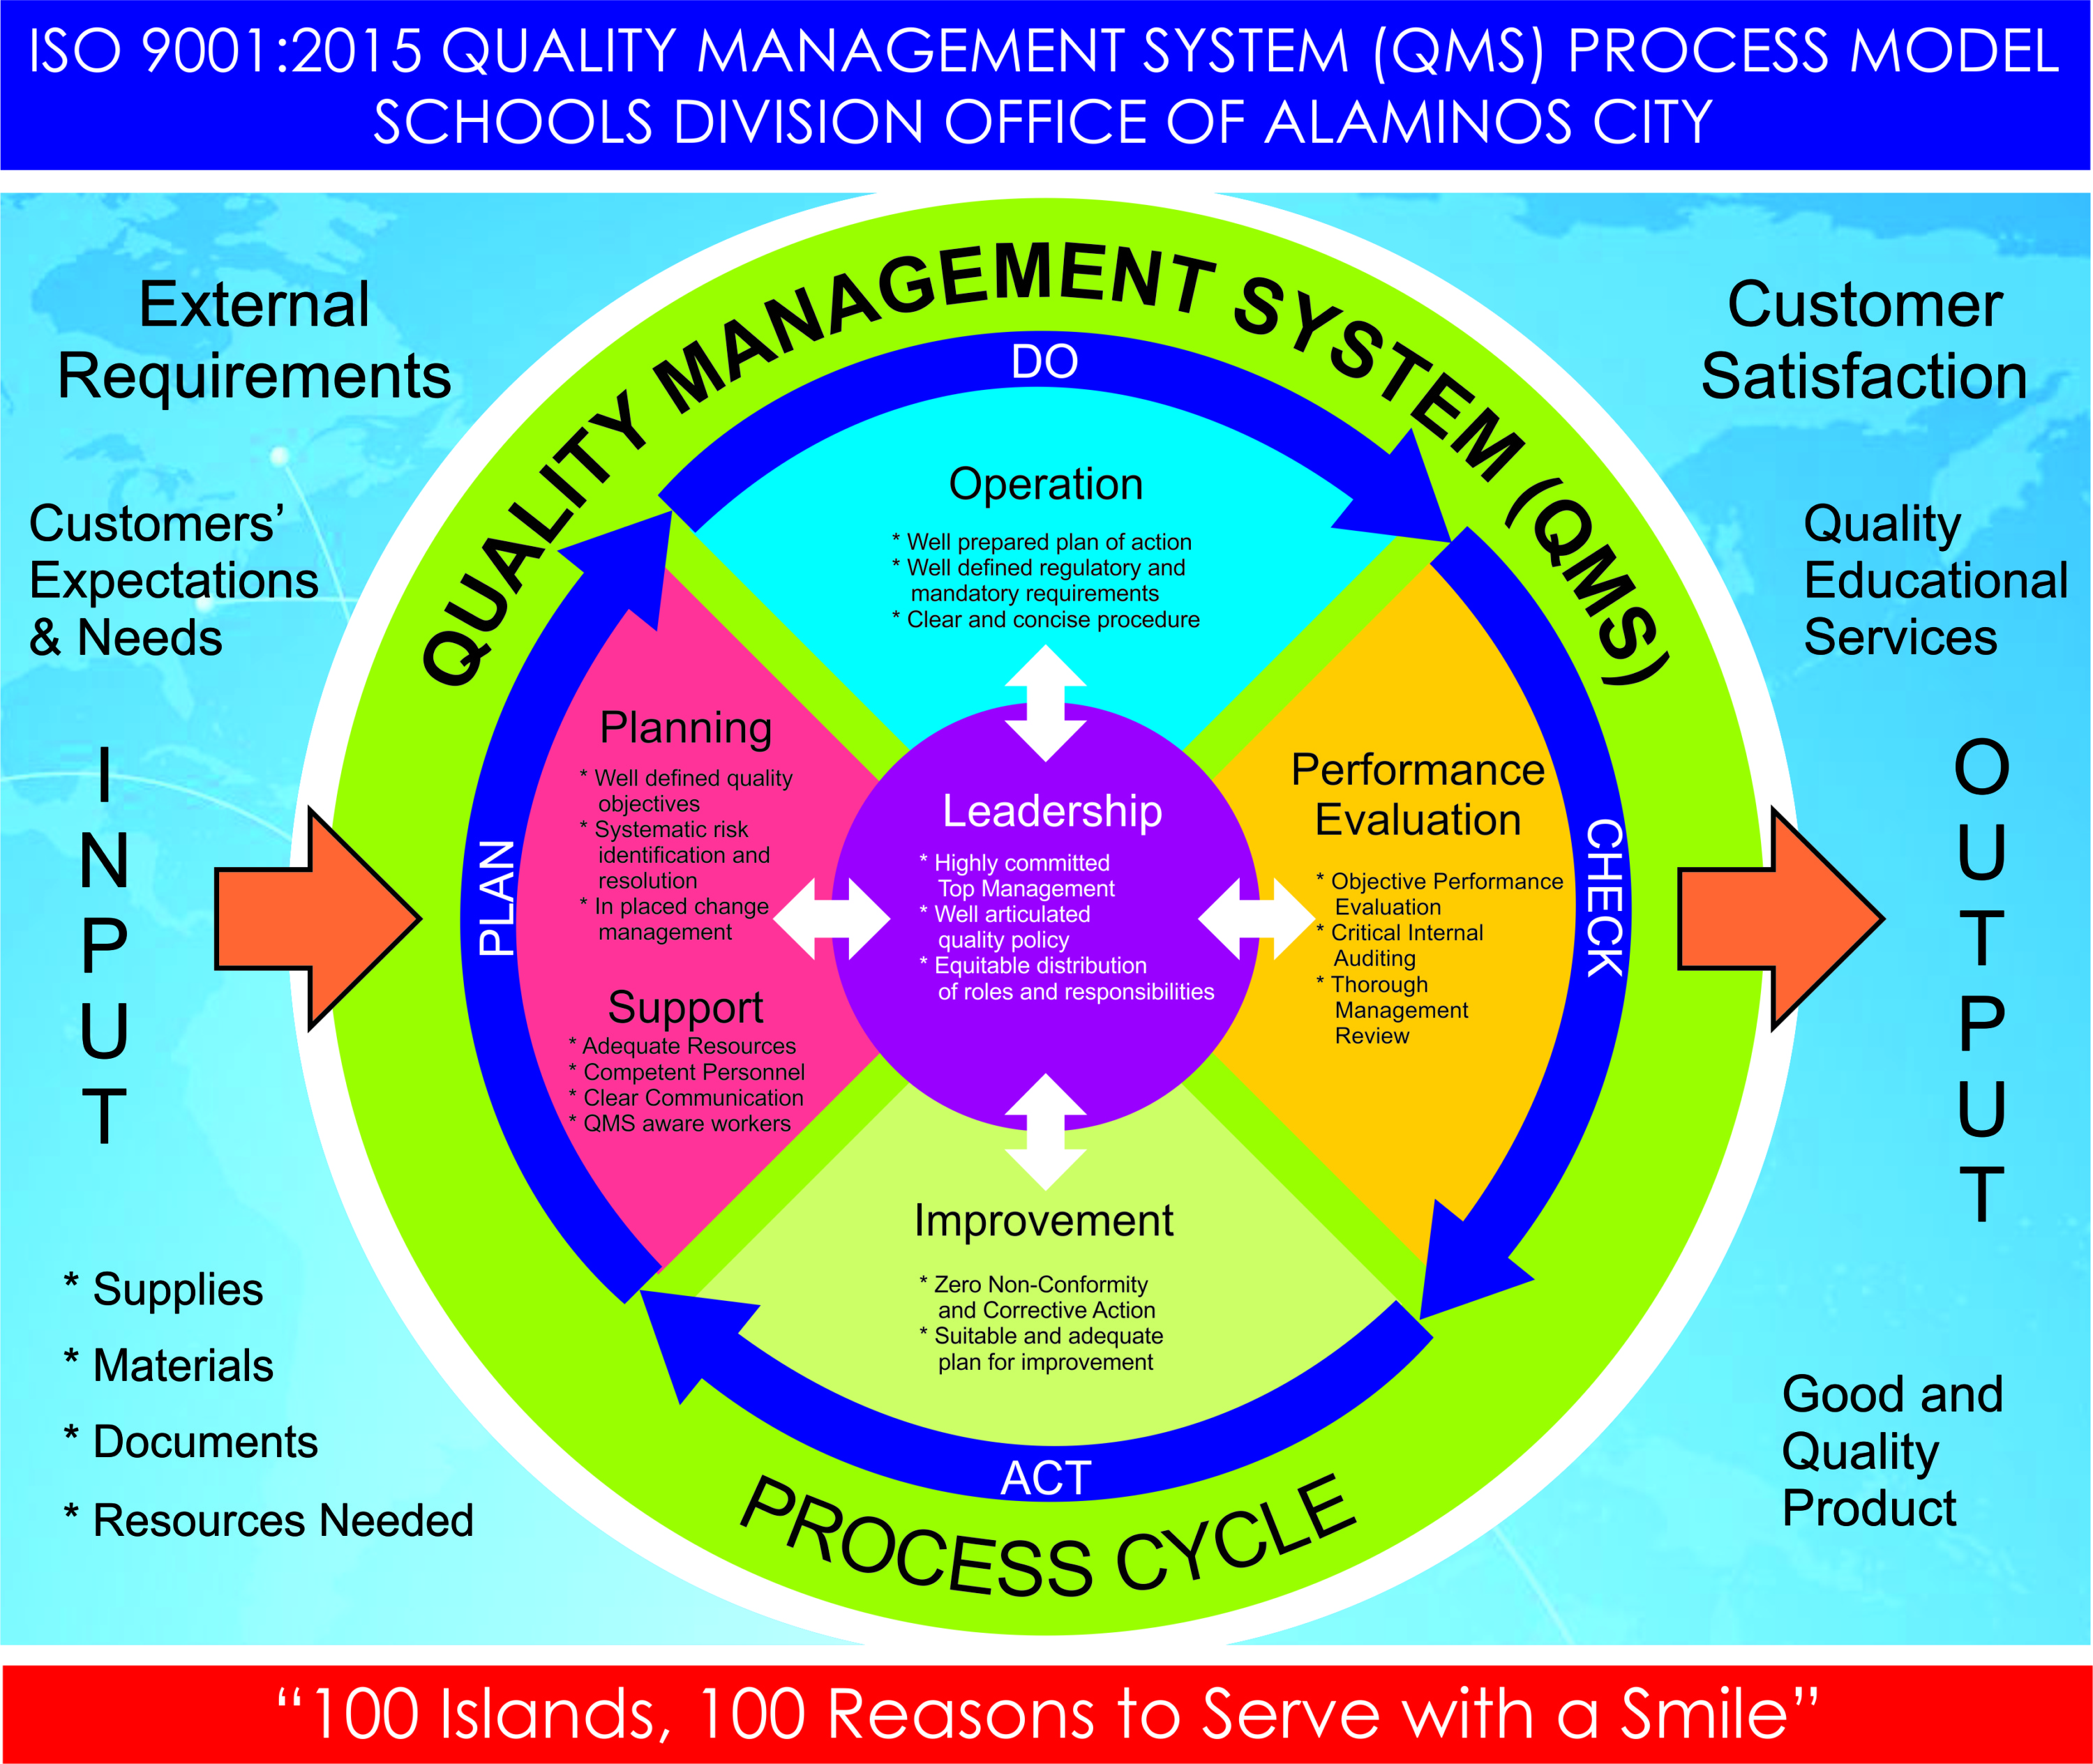 The Quality Management System Process Model of SDO Alaminos City - Schools Division Office of ...